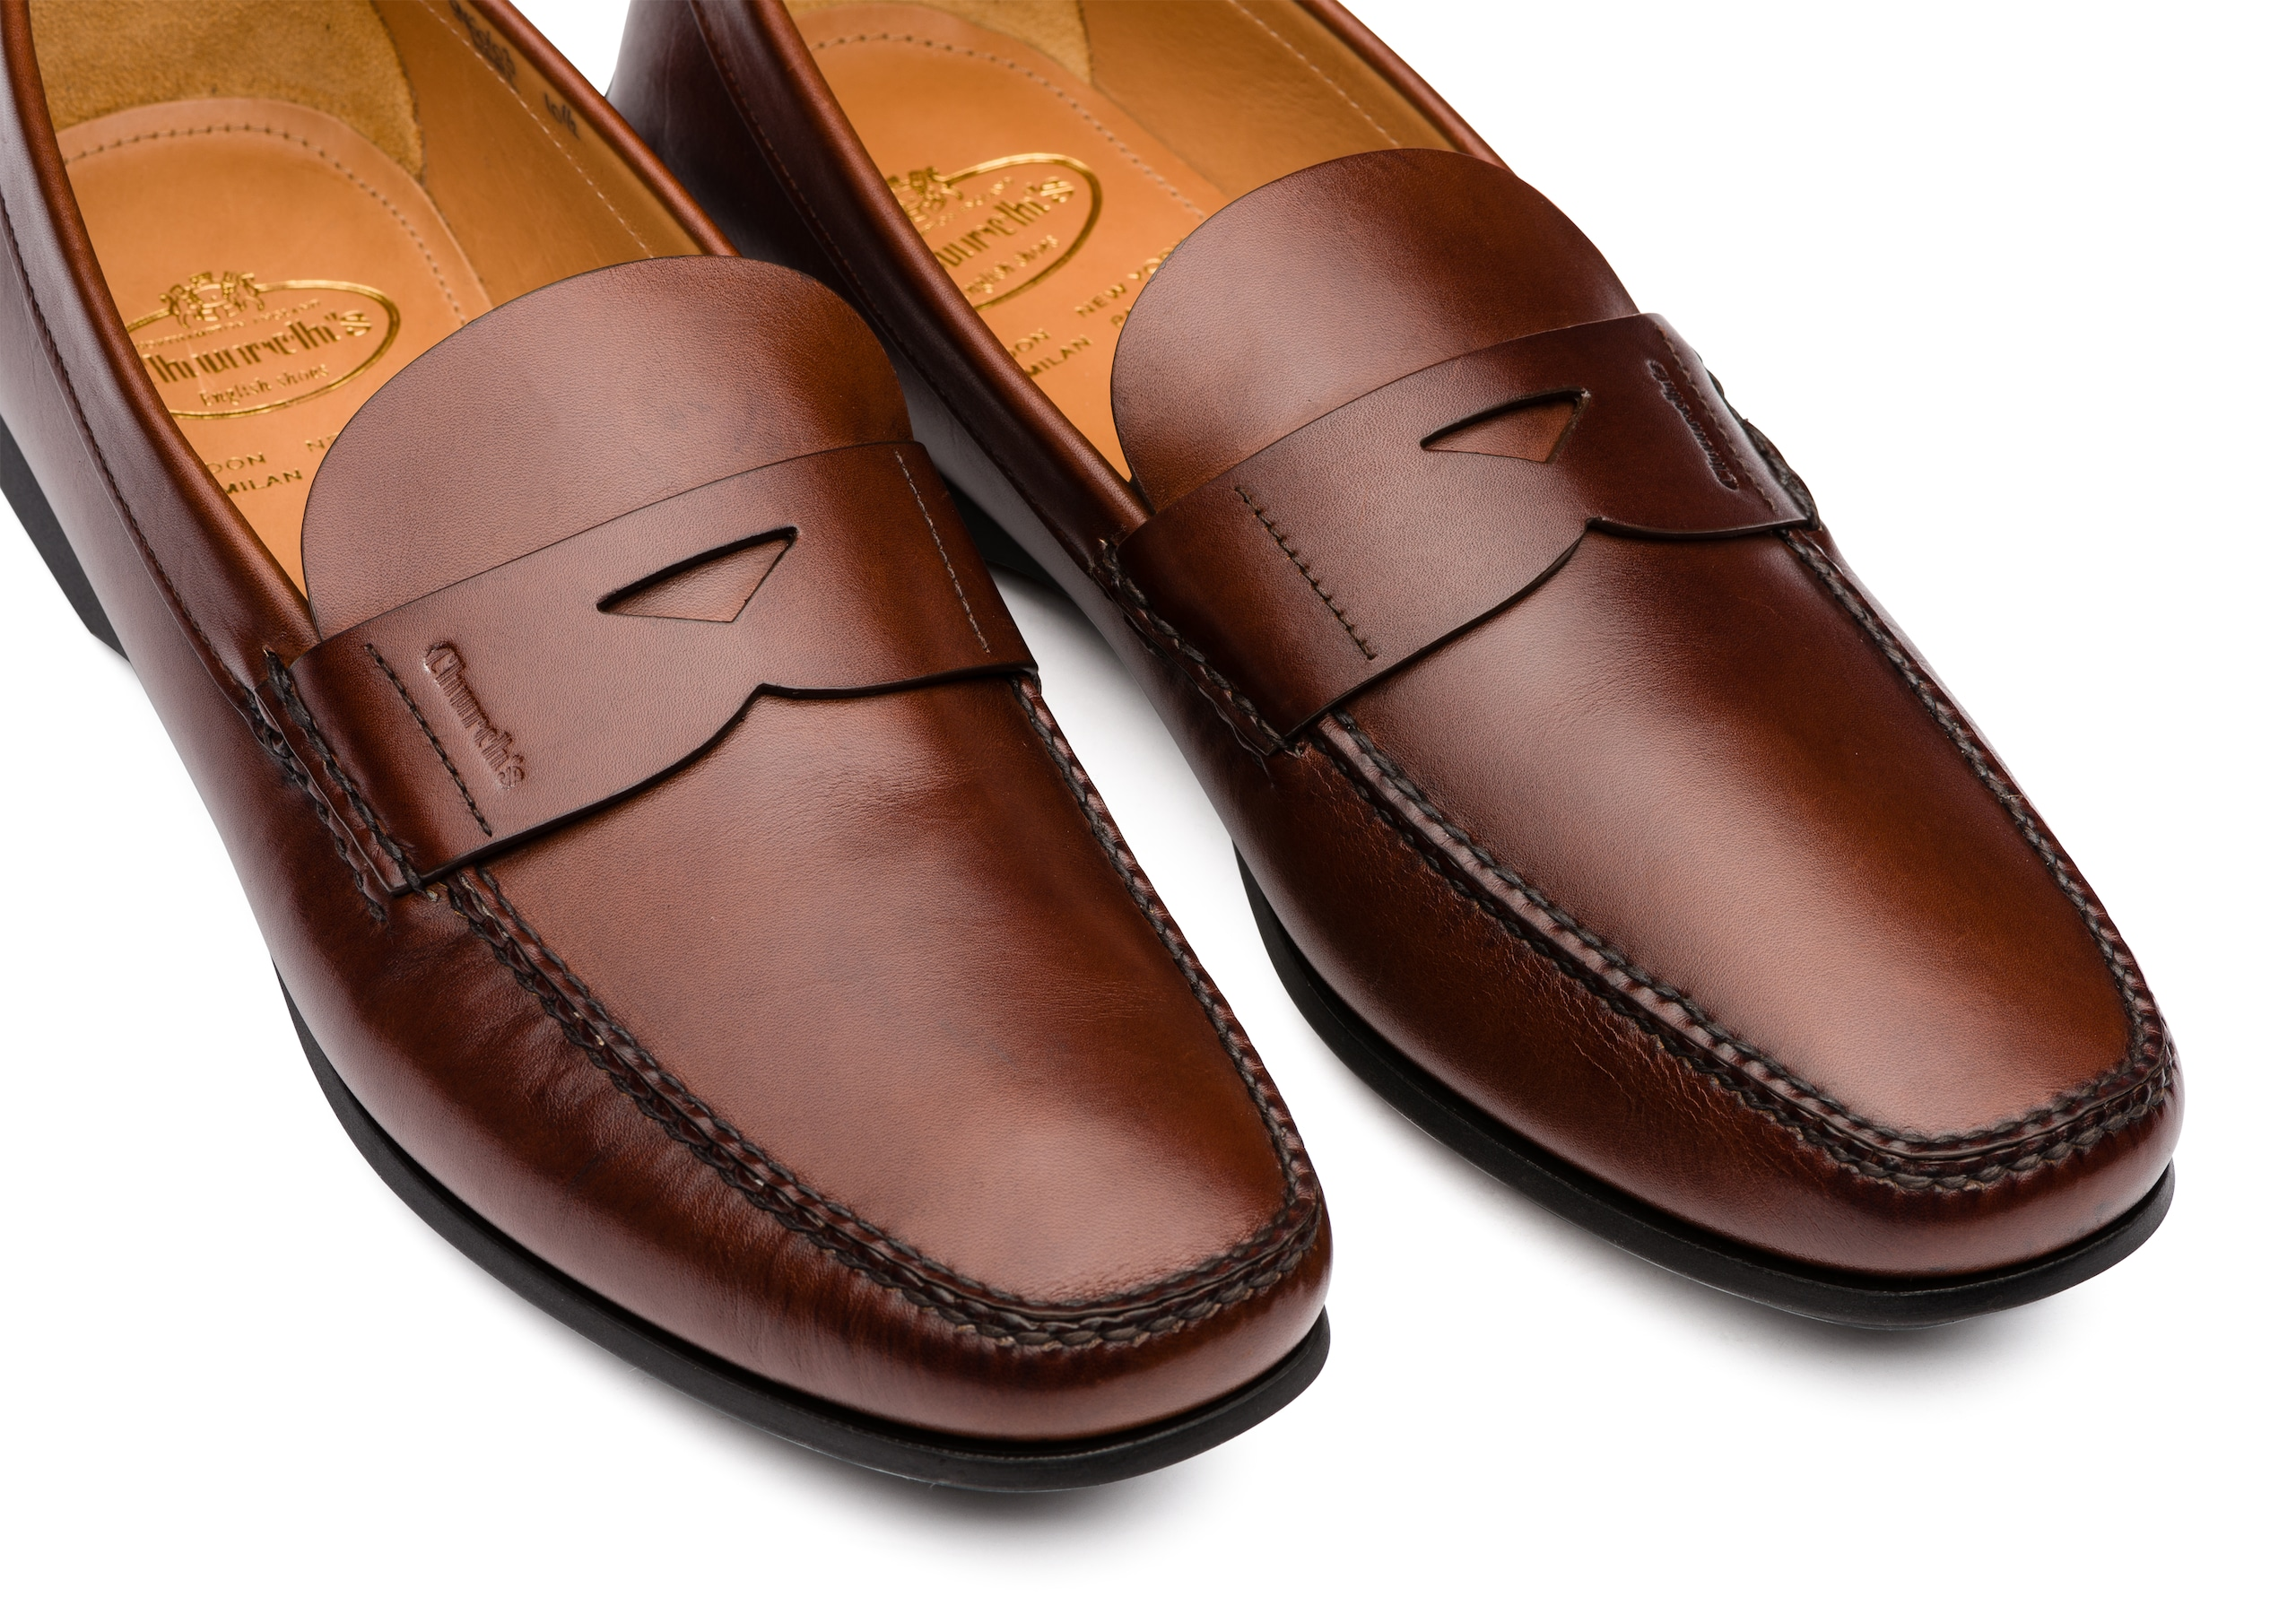 Karl Church's Calf Leather Loafer Brown